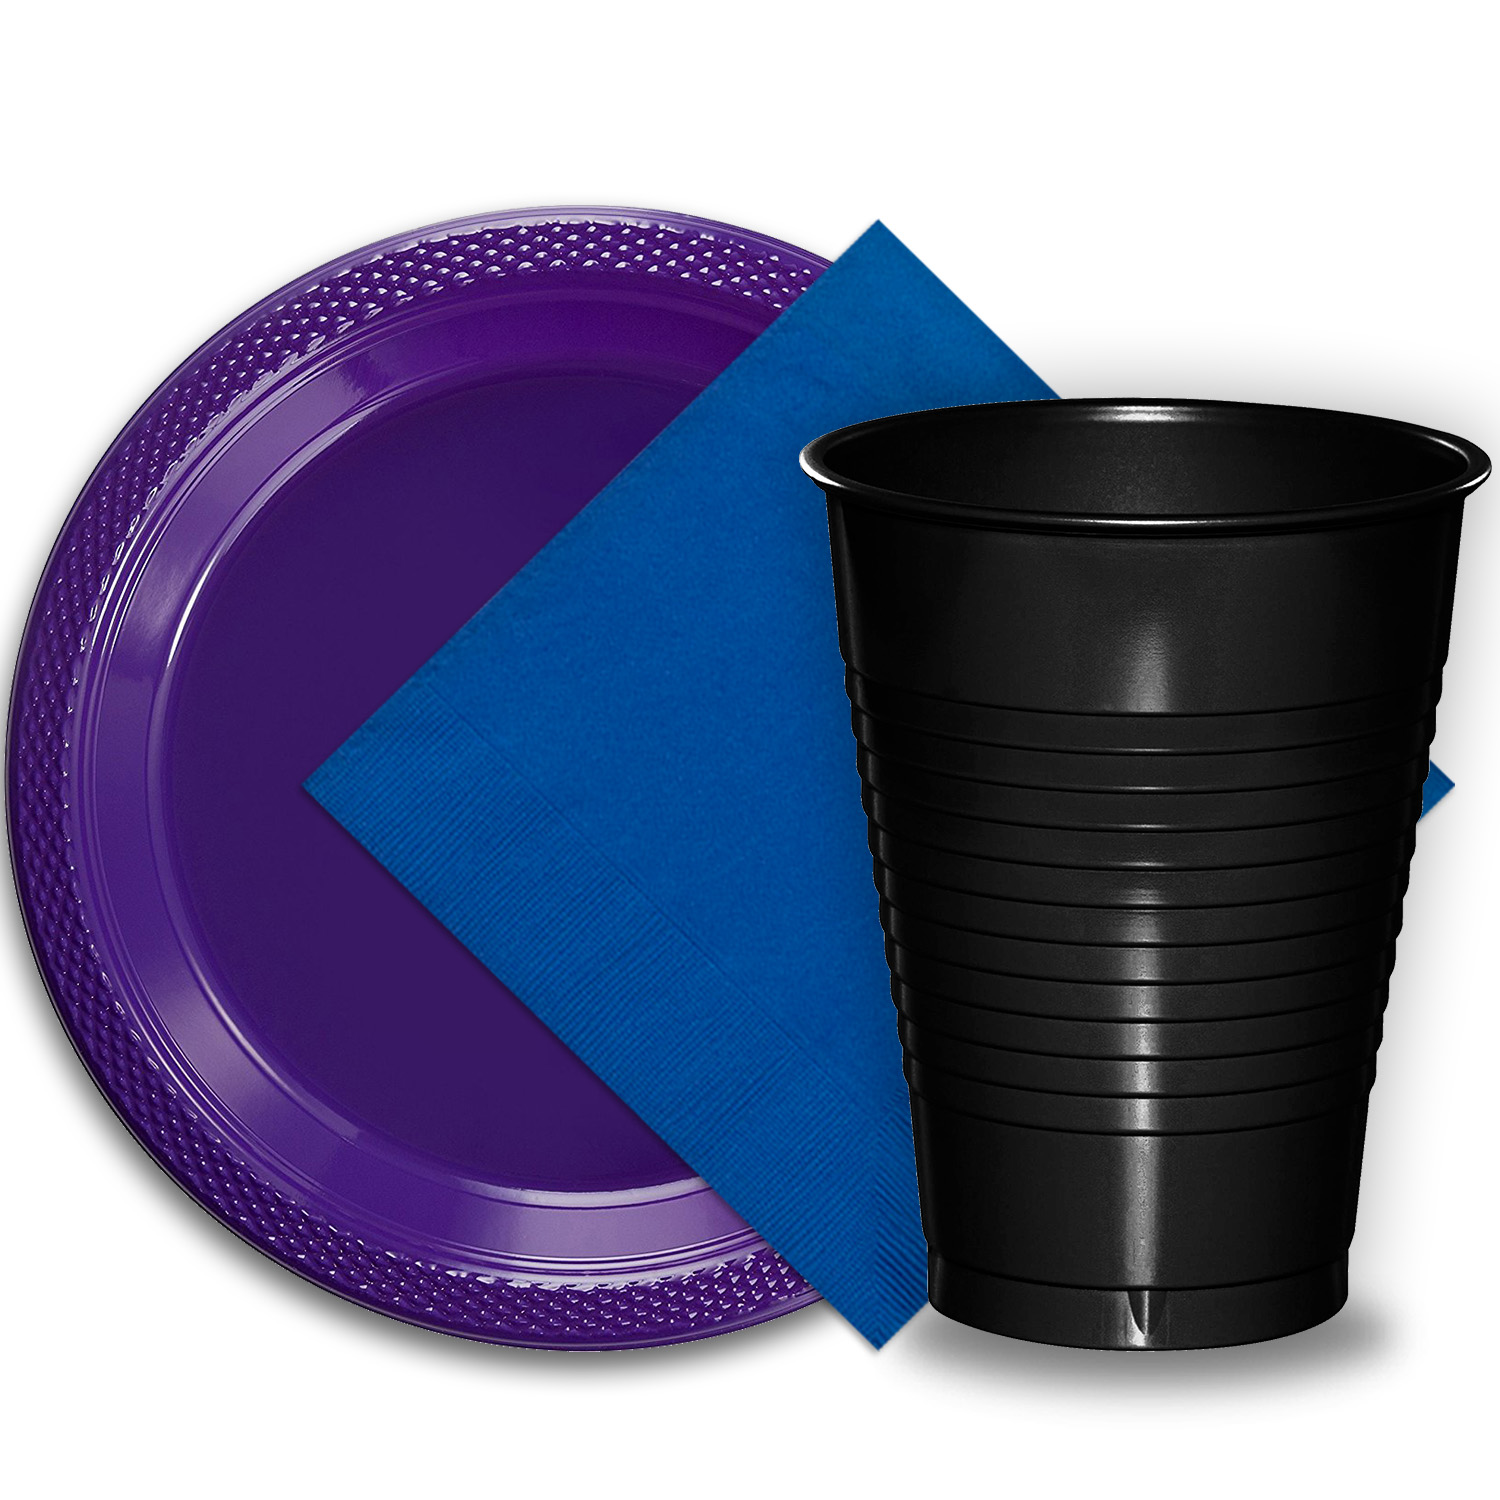 "50 Purple Plastic Plates (9""), 50 Black Plastic Cups (12 oz.), and 50 Dark Blue Paper Napkins, Dazzelling Colored Disposable Party Supplies Tableware Set for Fifty Guests."